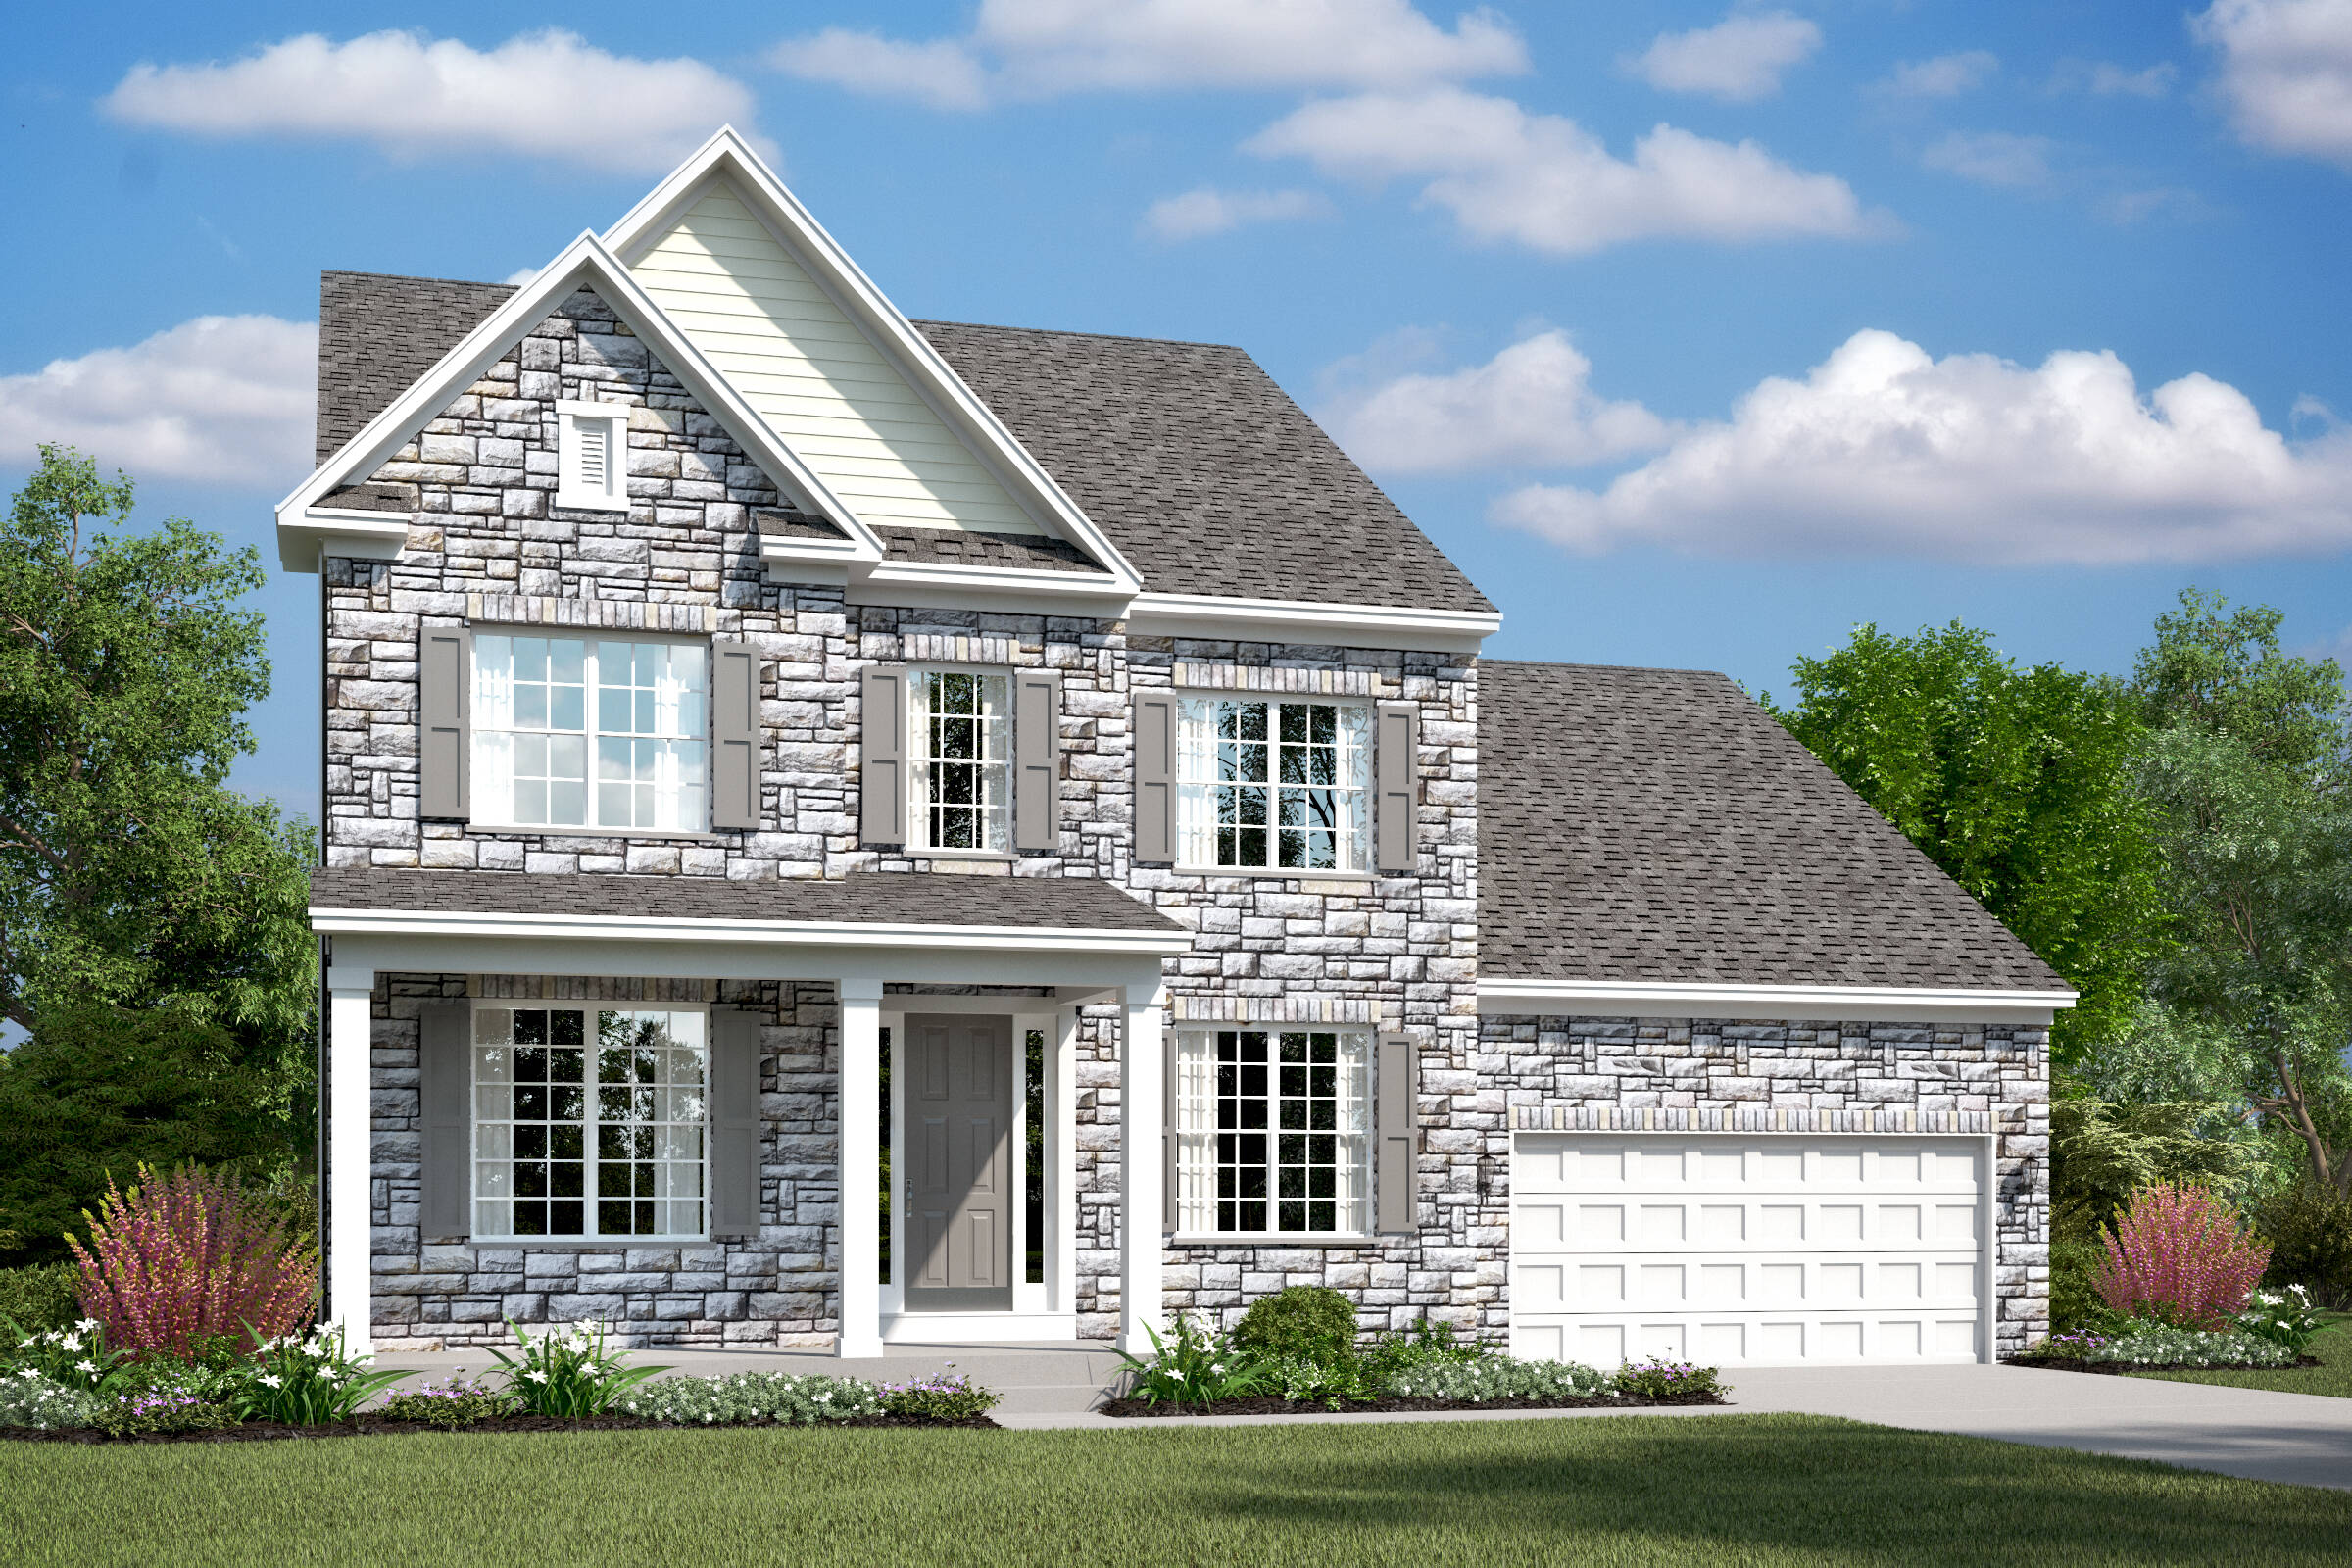 oxnard I c new homes at burke junction in virginia